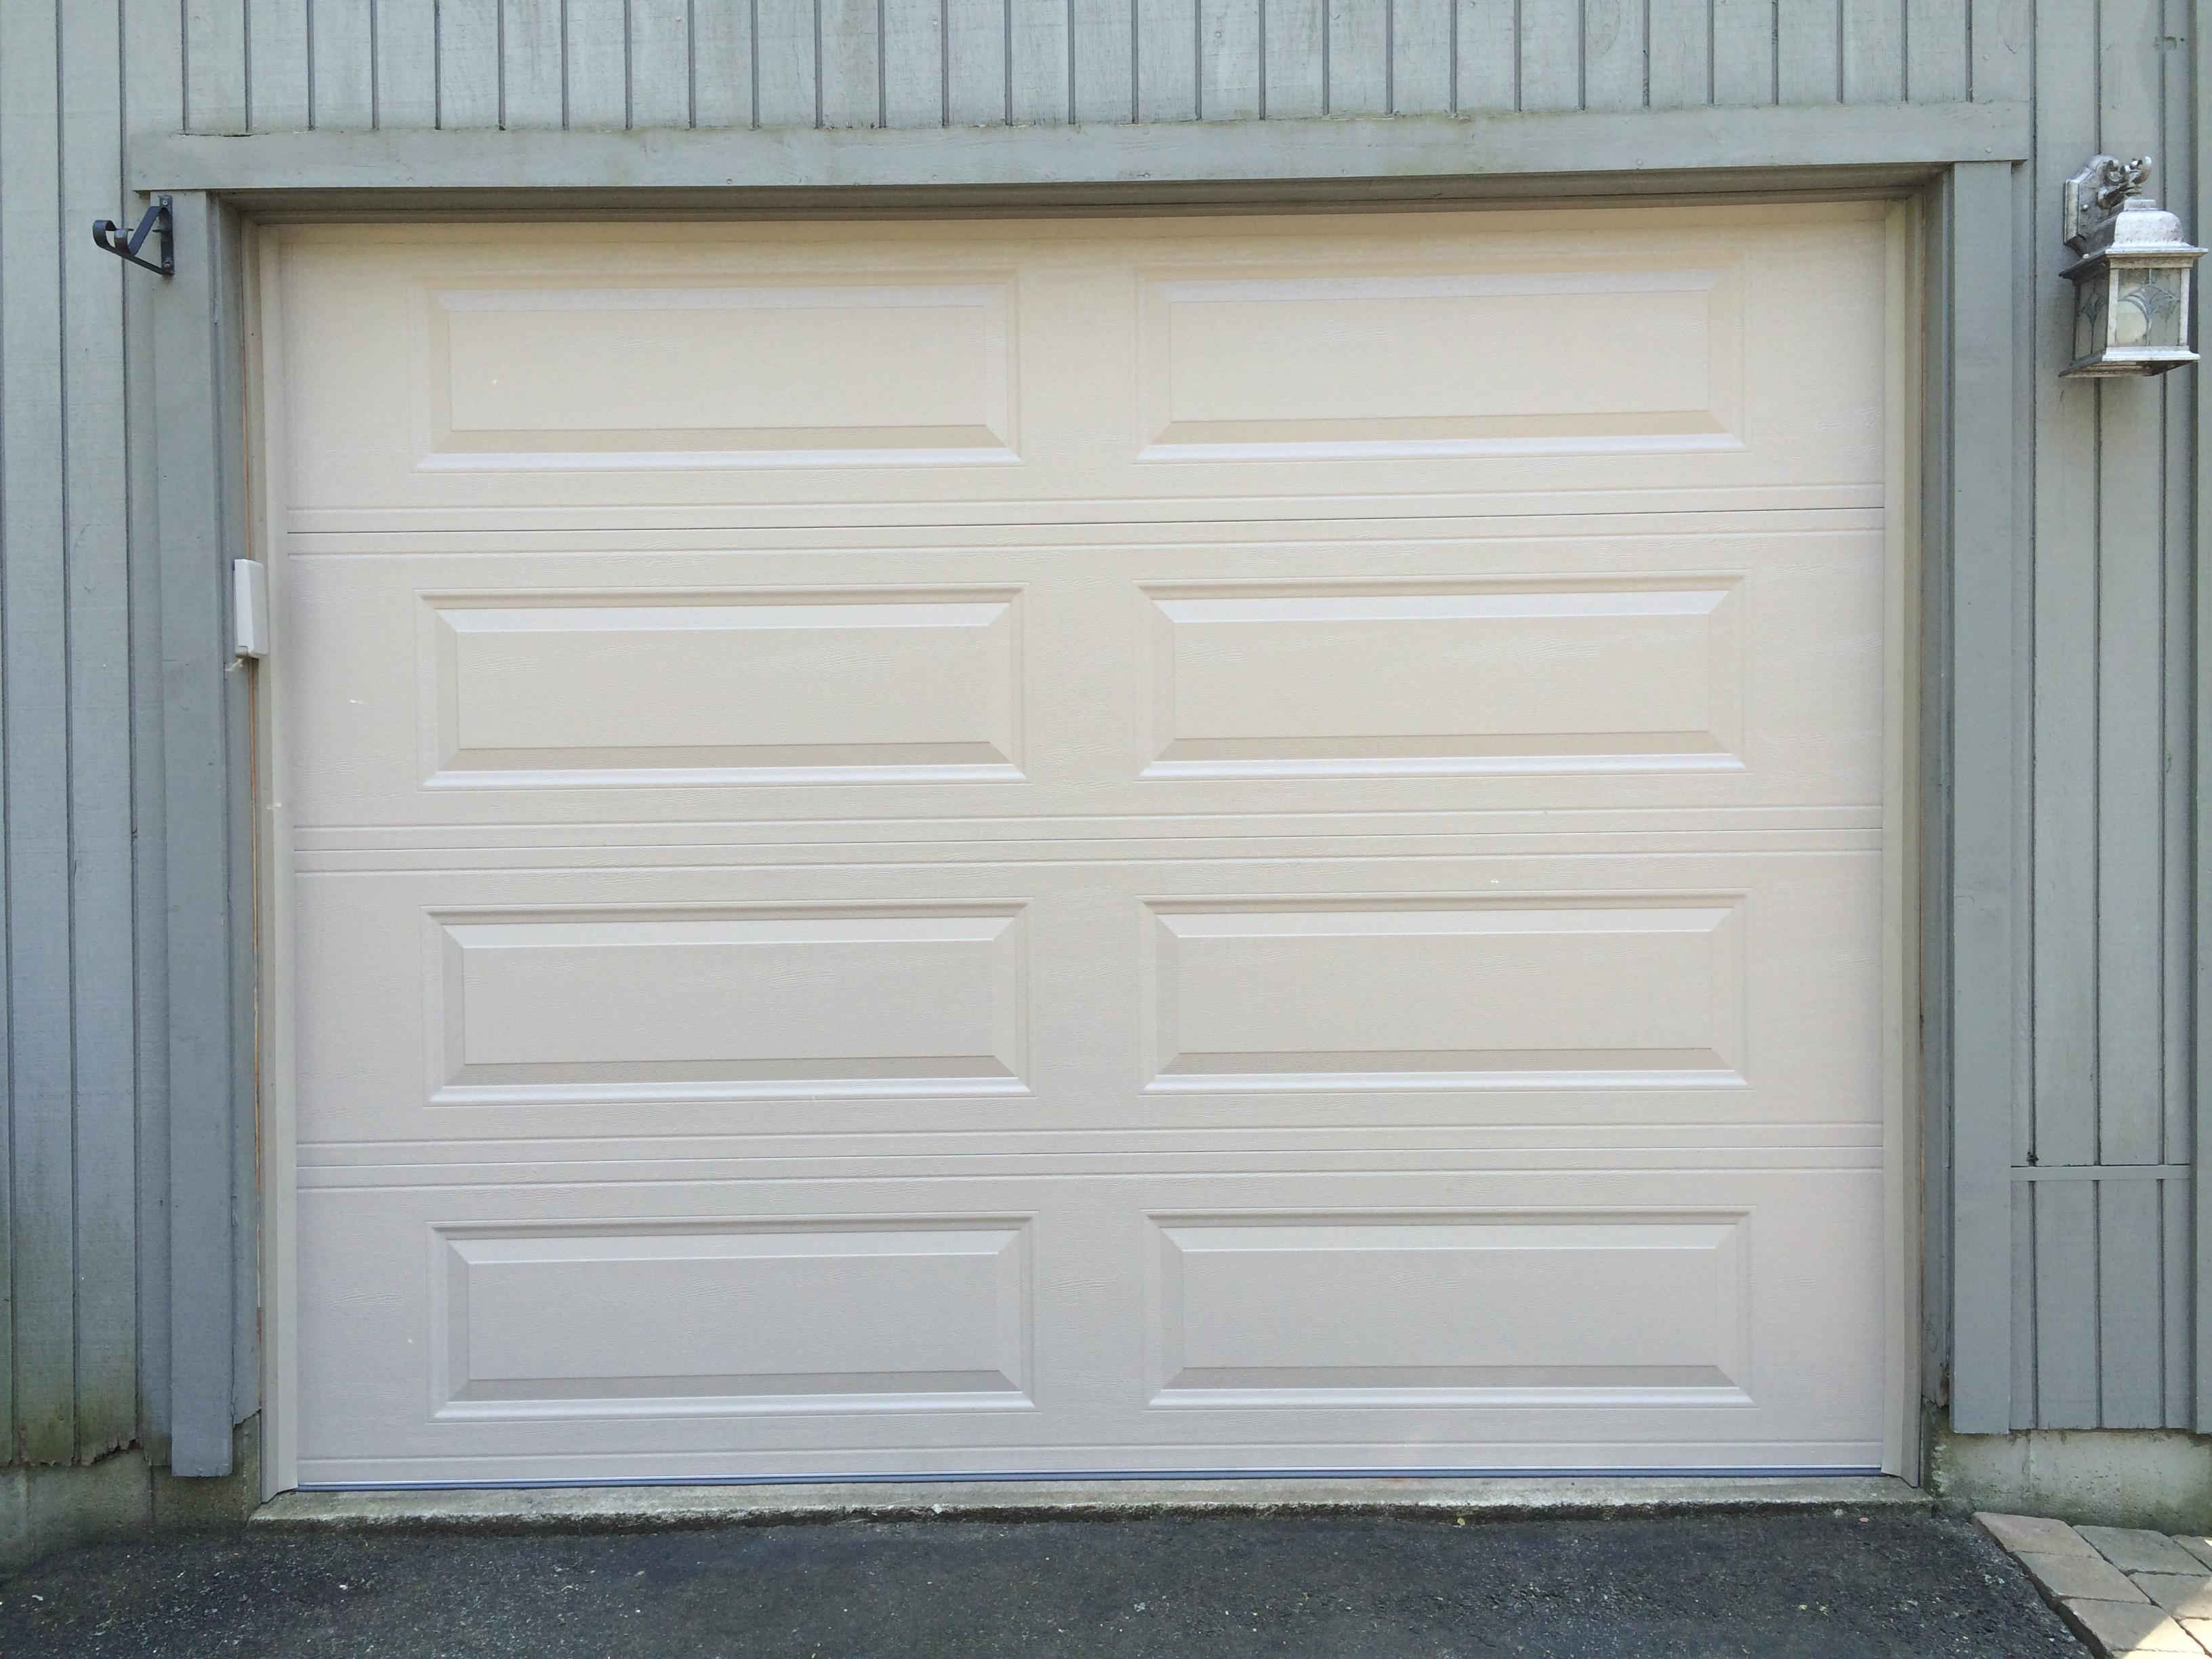 2448 #746A57 Overhead Doors Solutions In West Haven CT 06516 ChamberofCommerce  image Overhead Garage Doors Residential Reviews 37133264